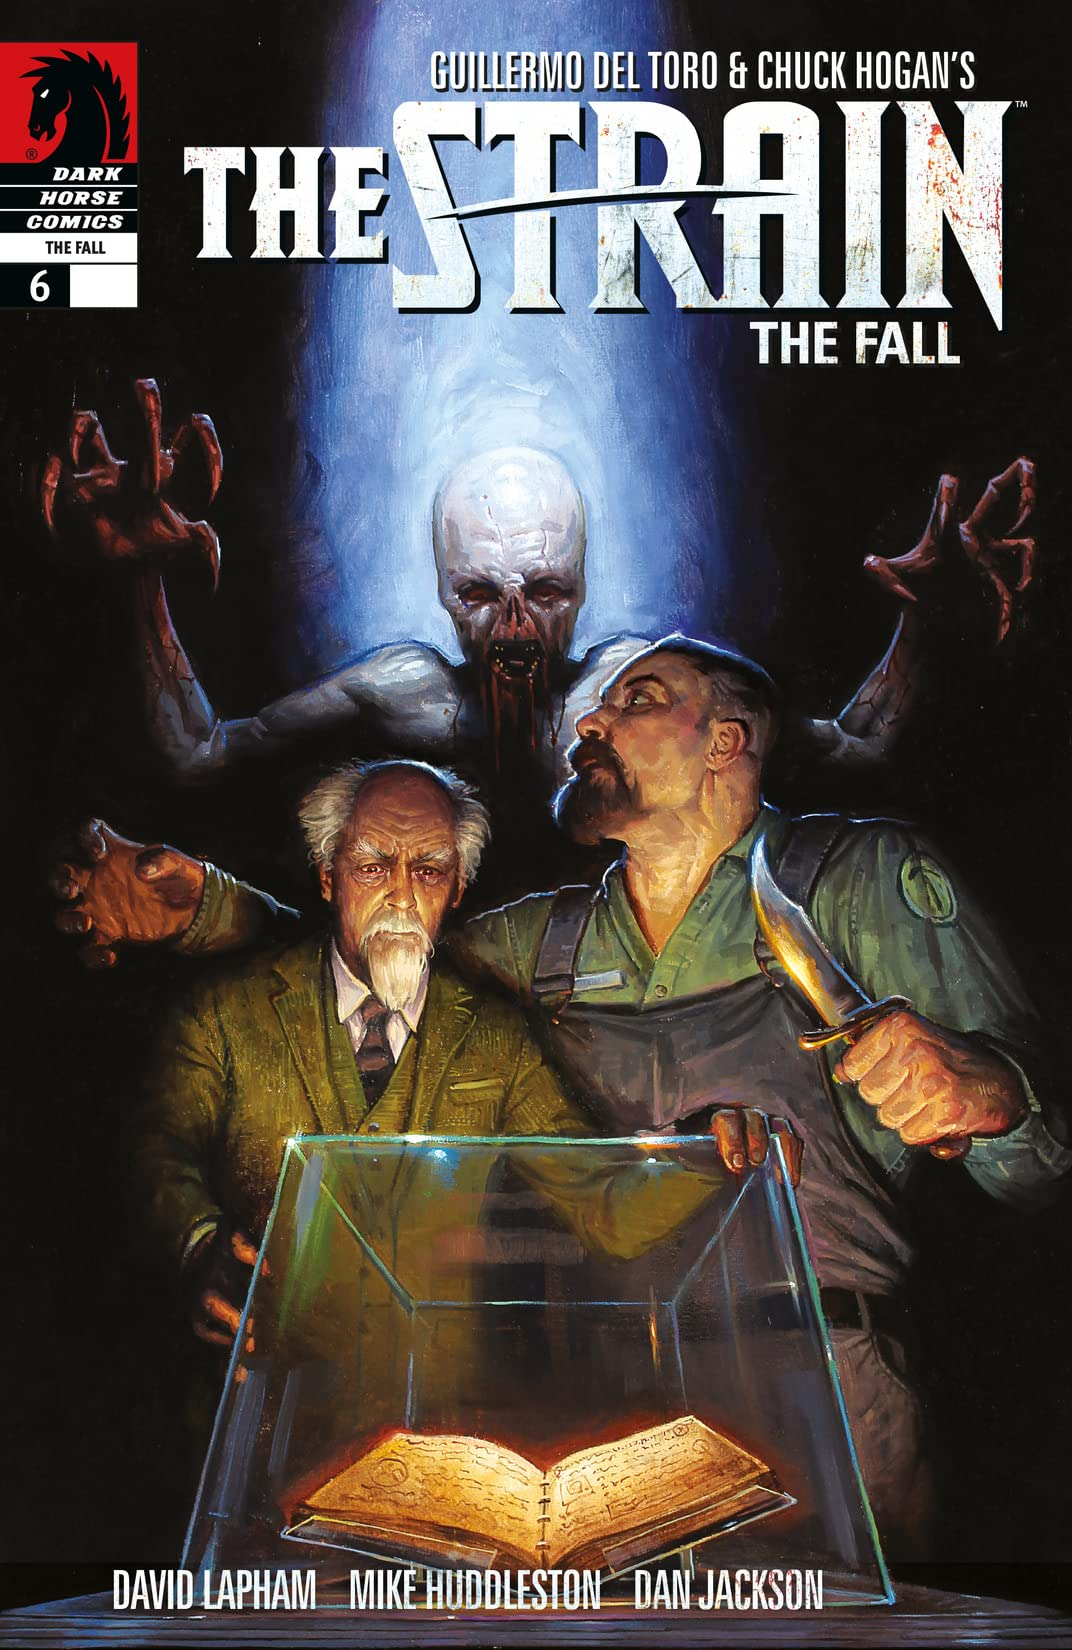 The Strain: The Fall #6